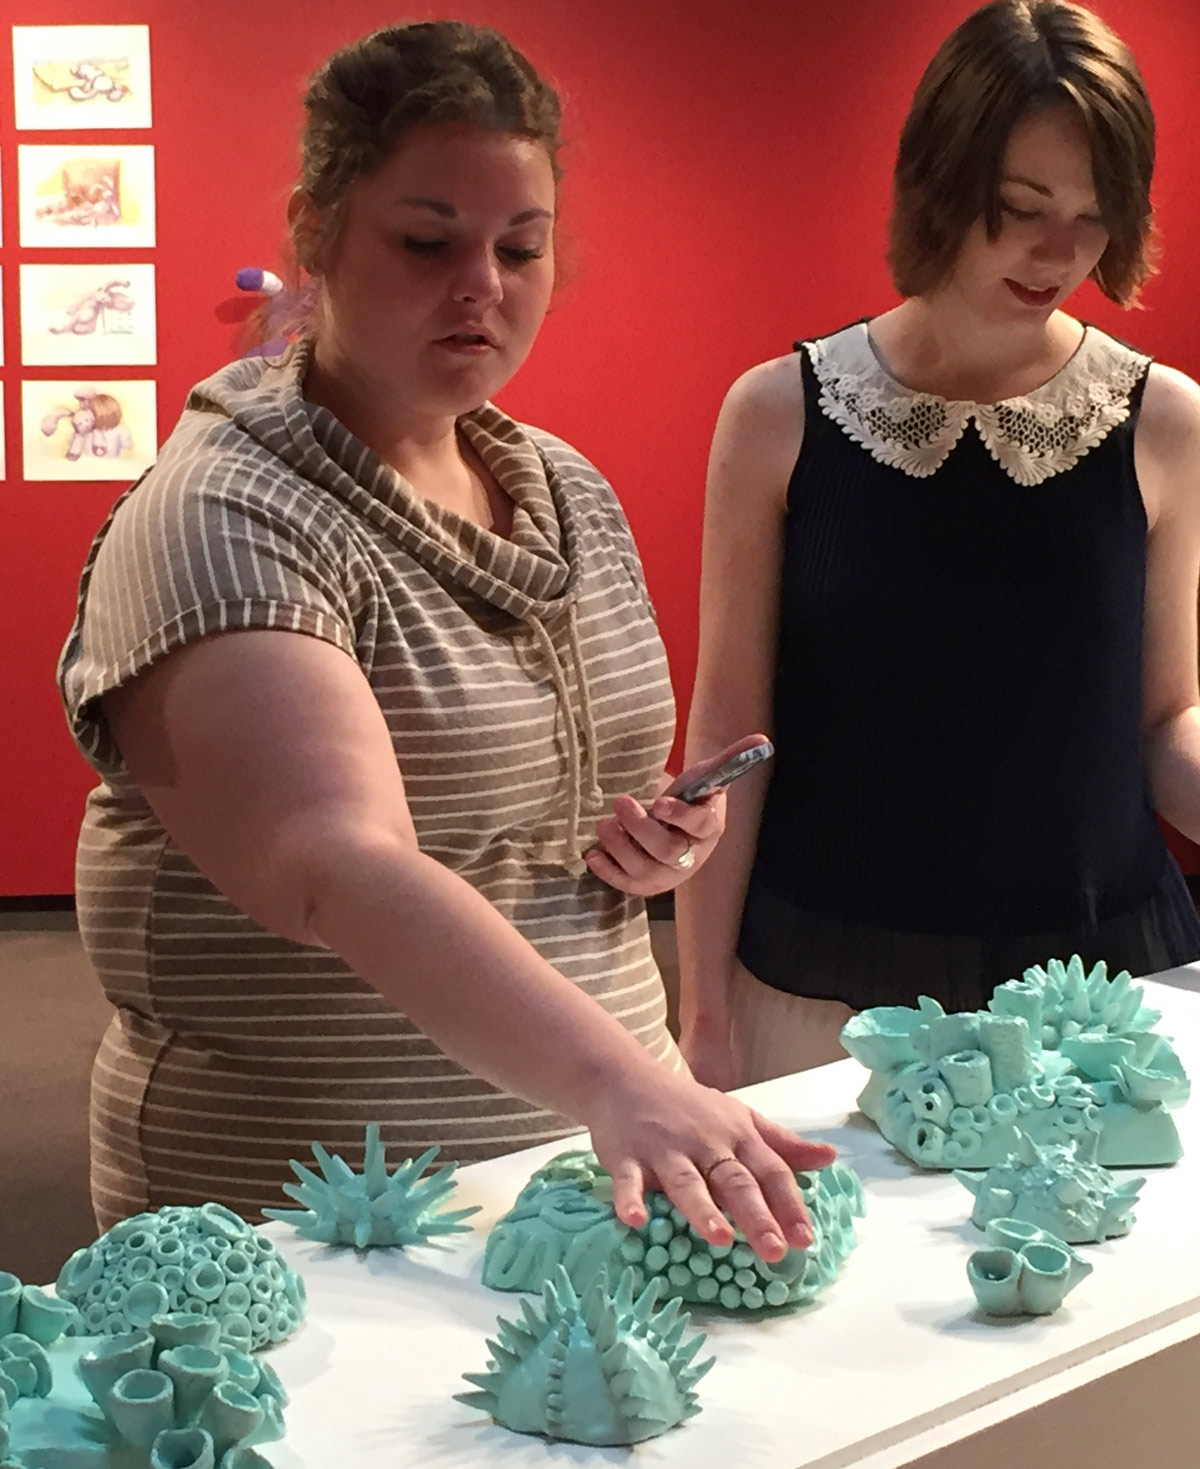 student touching a ceramics display at a gallery opening.